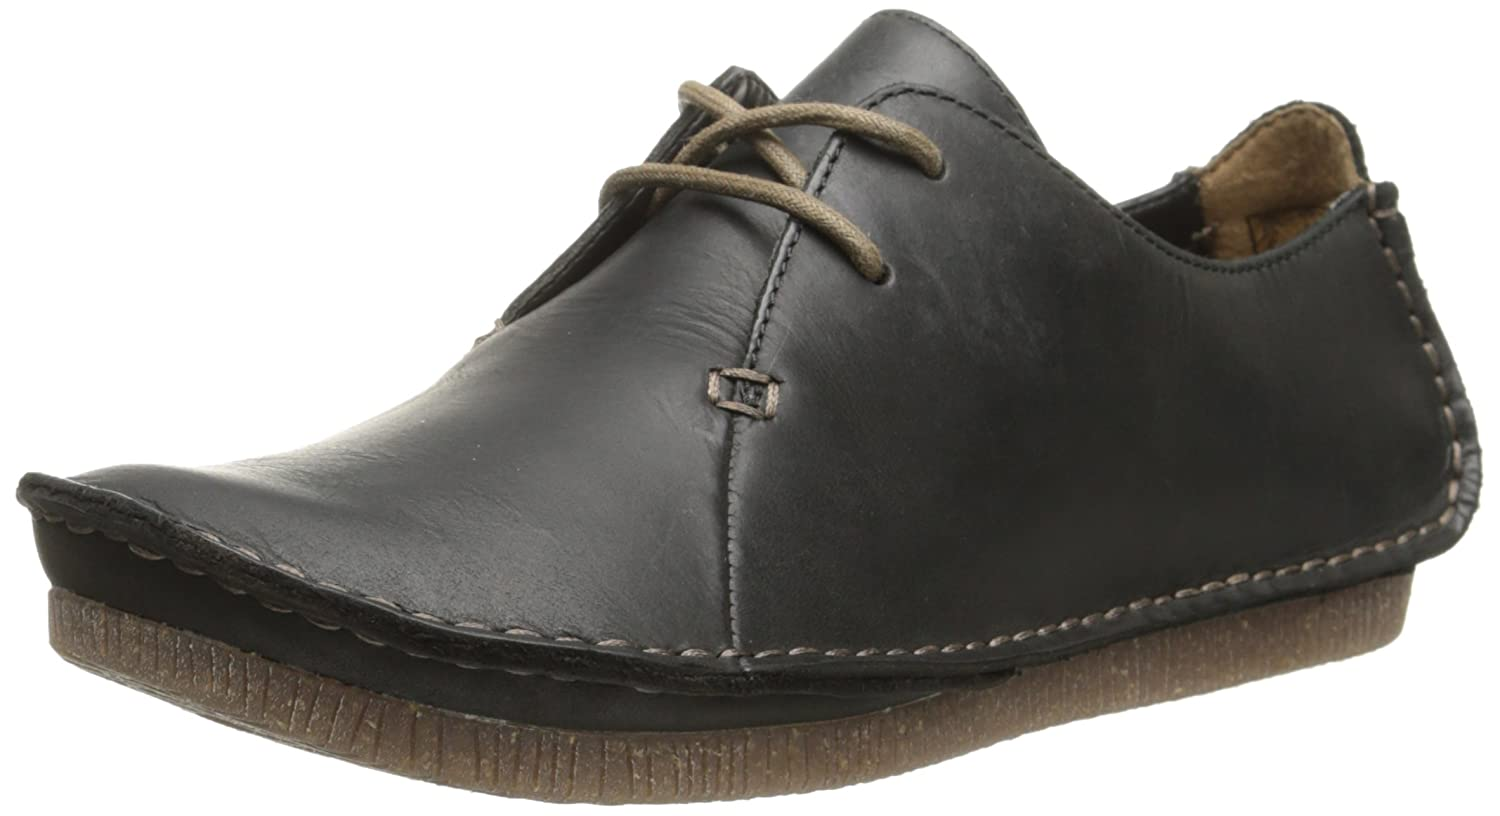 CLARKS Women's Janey Mae Oxford B00U7LH3S4 7.5 M US|Black Leather